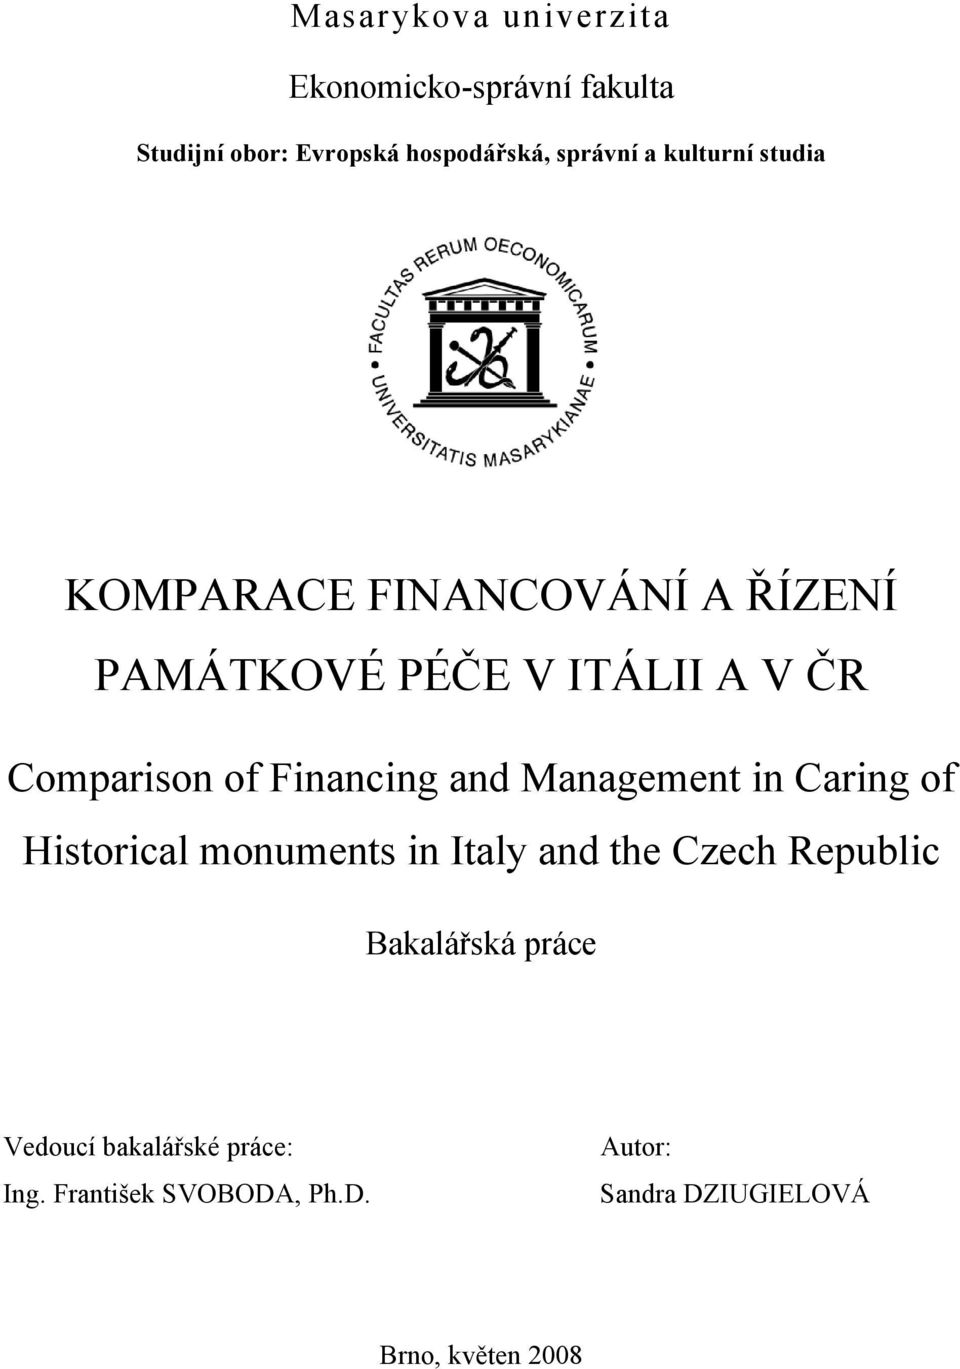 Financing and Management in Caring of Historical monuments in Italy and the Czech Republic